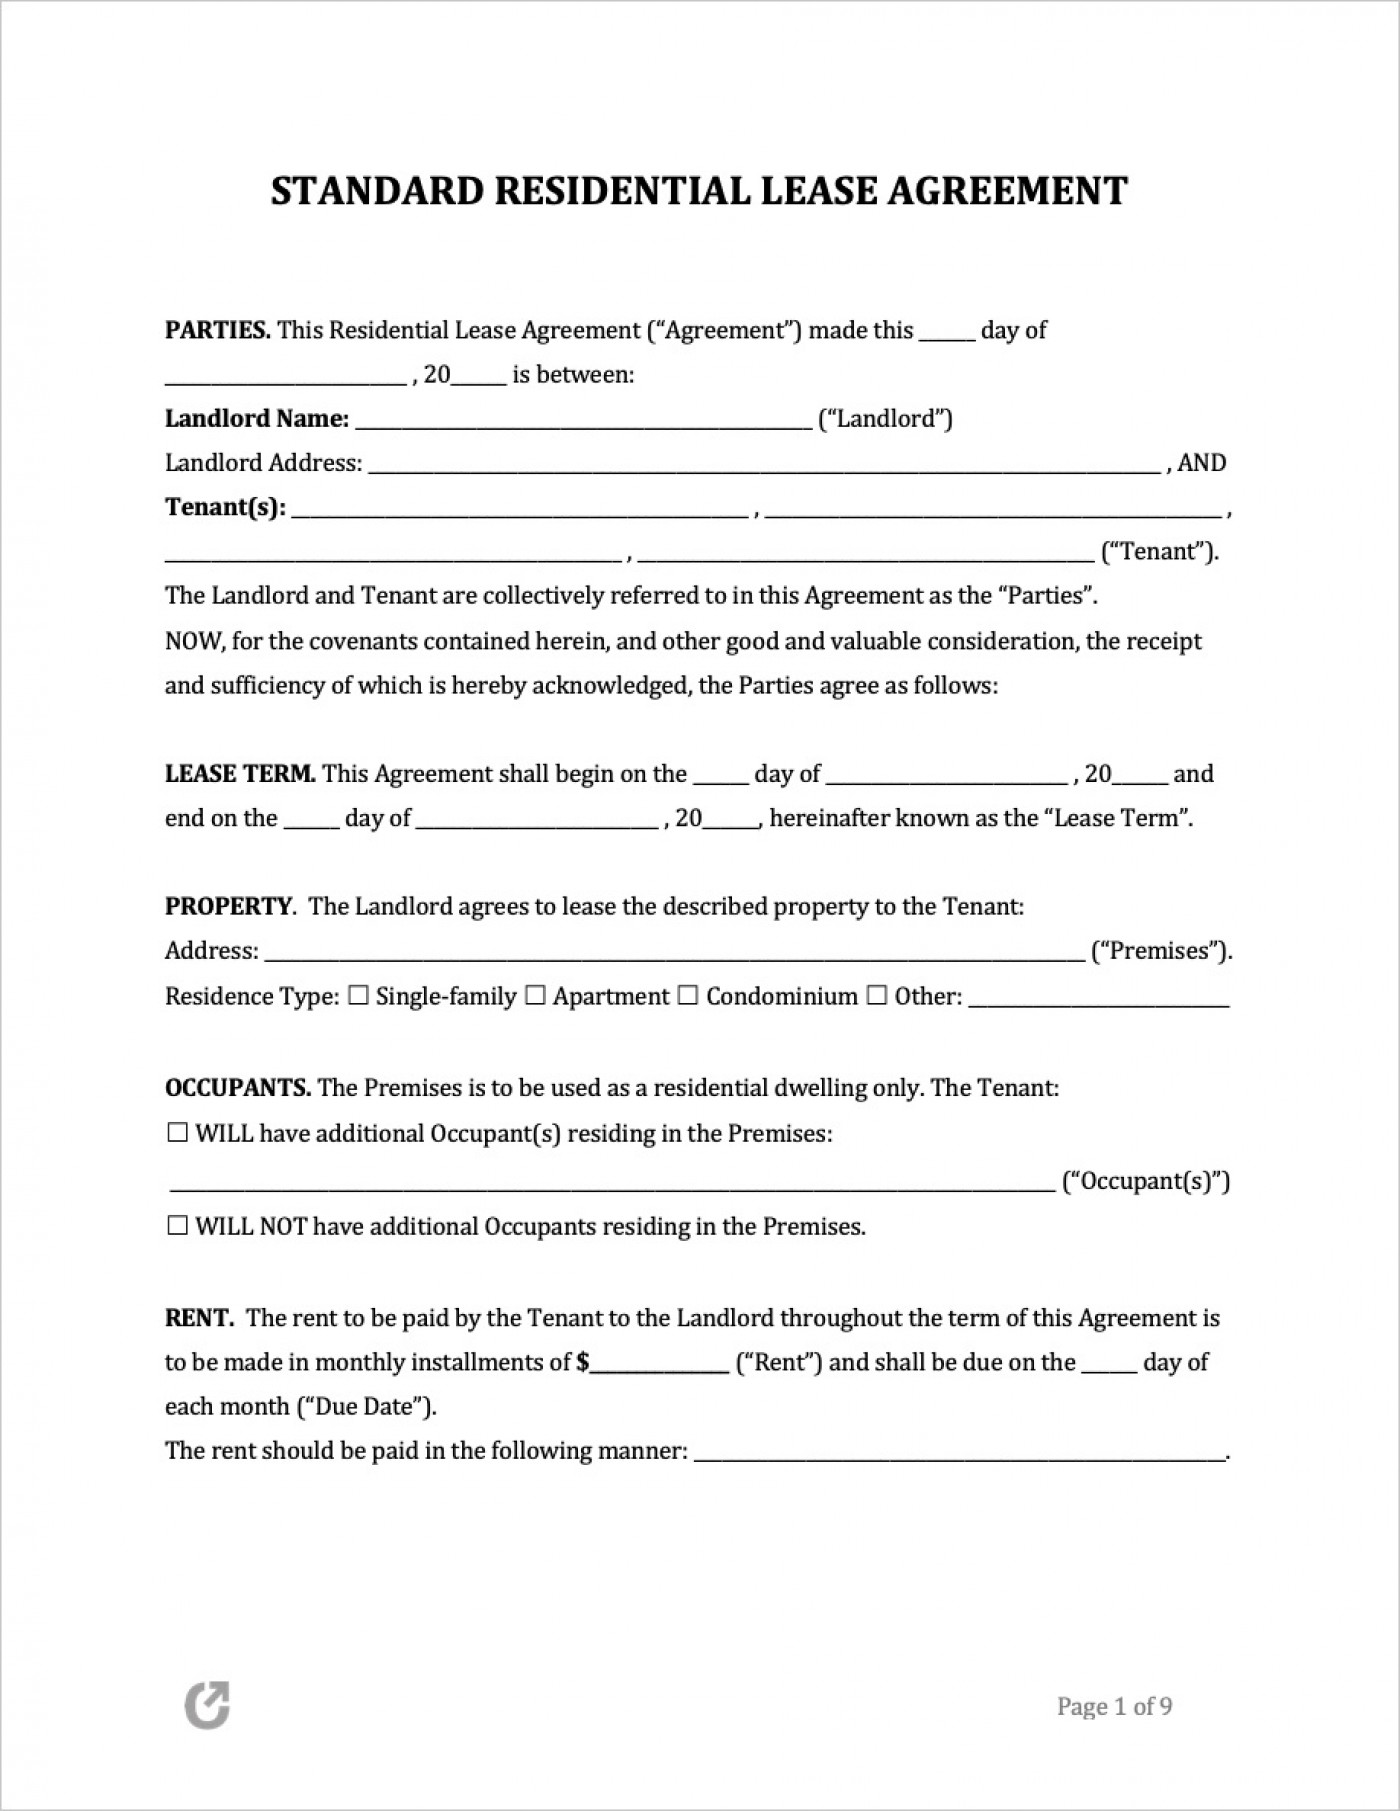 009 Phenomenal Free Rental Agreement Template Word High Resolution  South Africa House Lease Doc1400